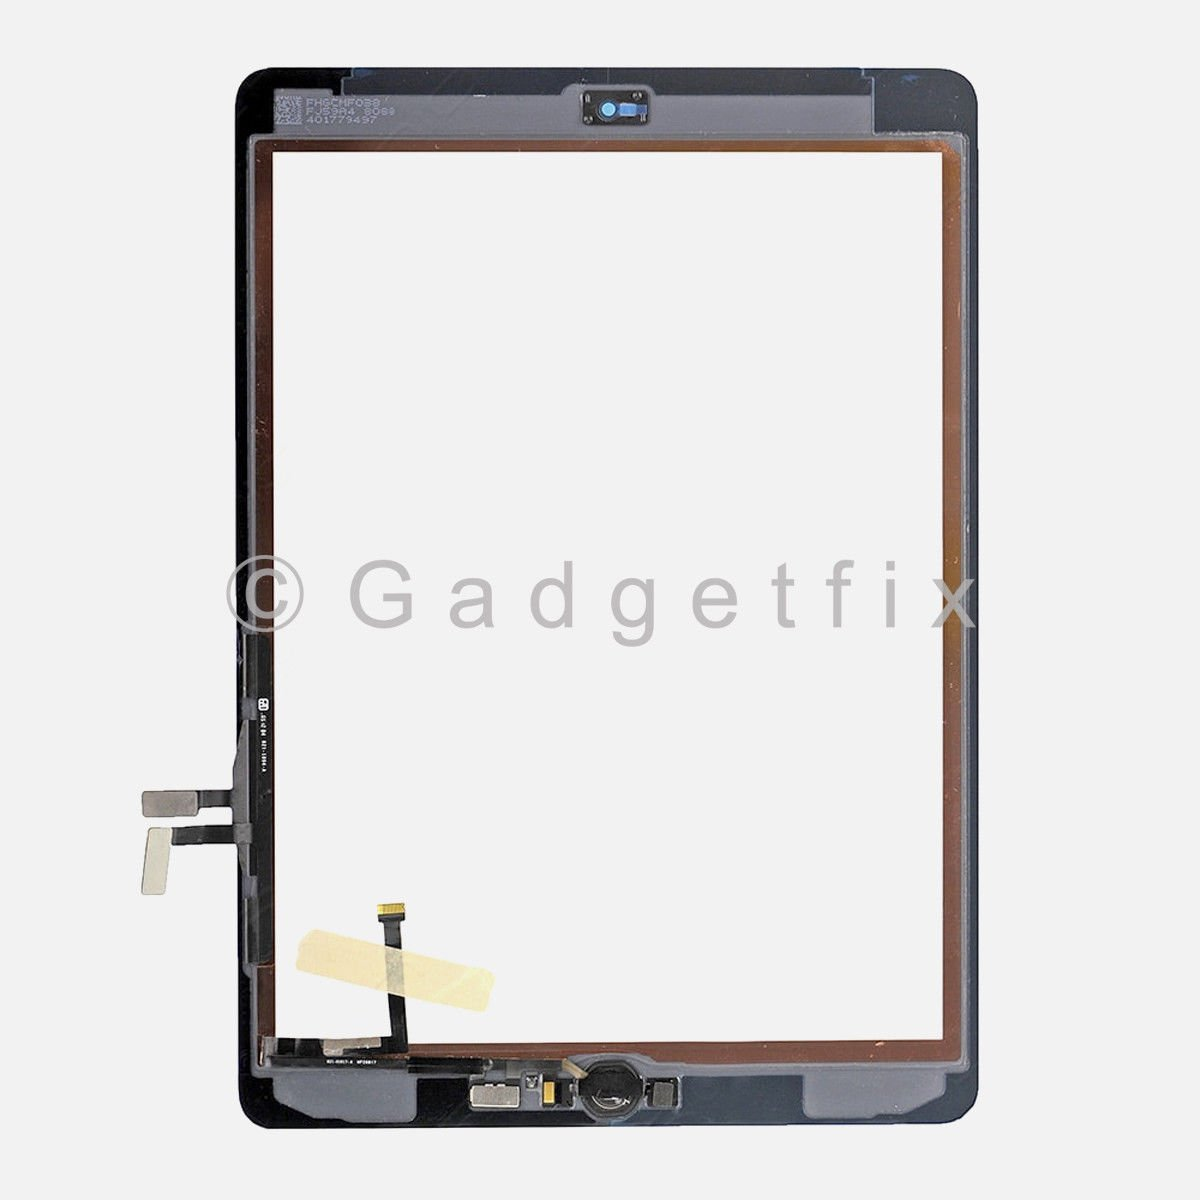 White Touch Screen Digitizer + Home Button for iPad 2017 5th Gen A1822 A1823